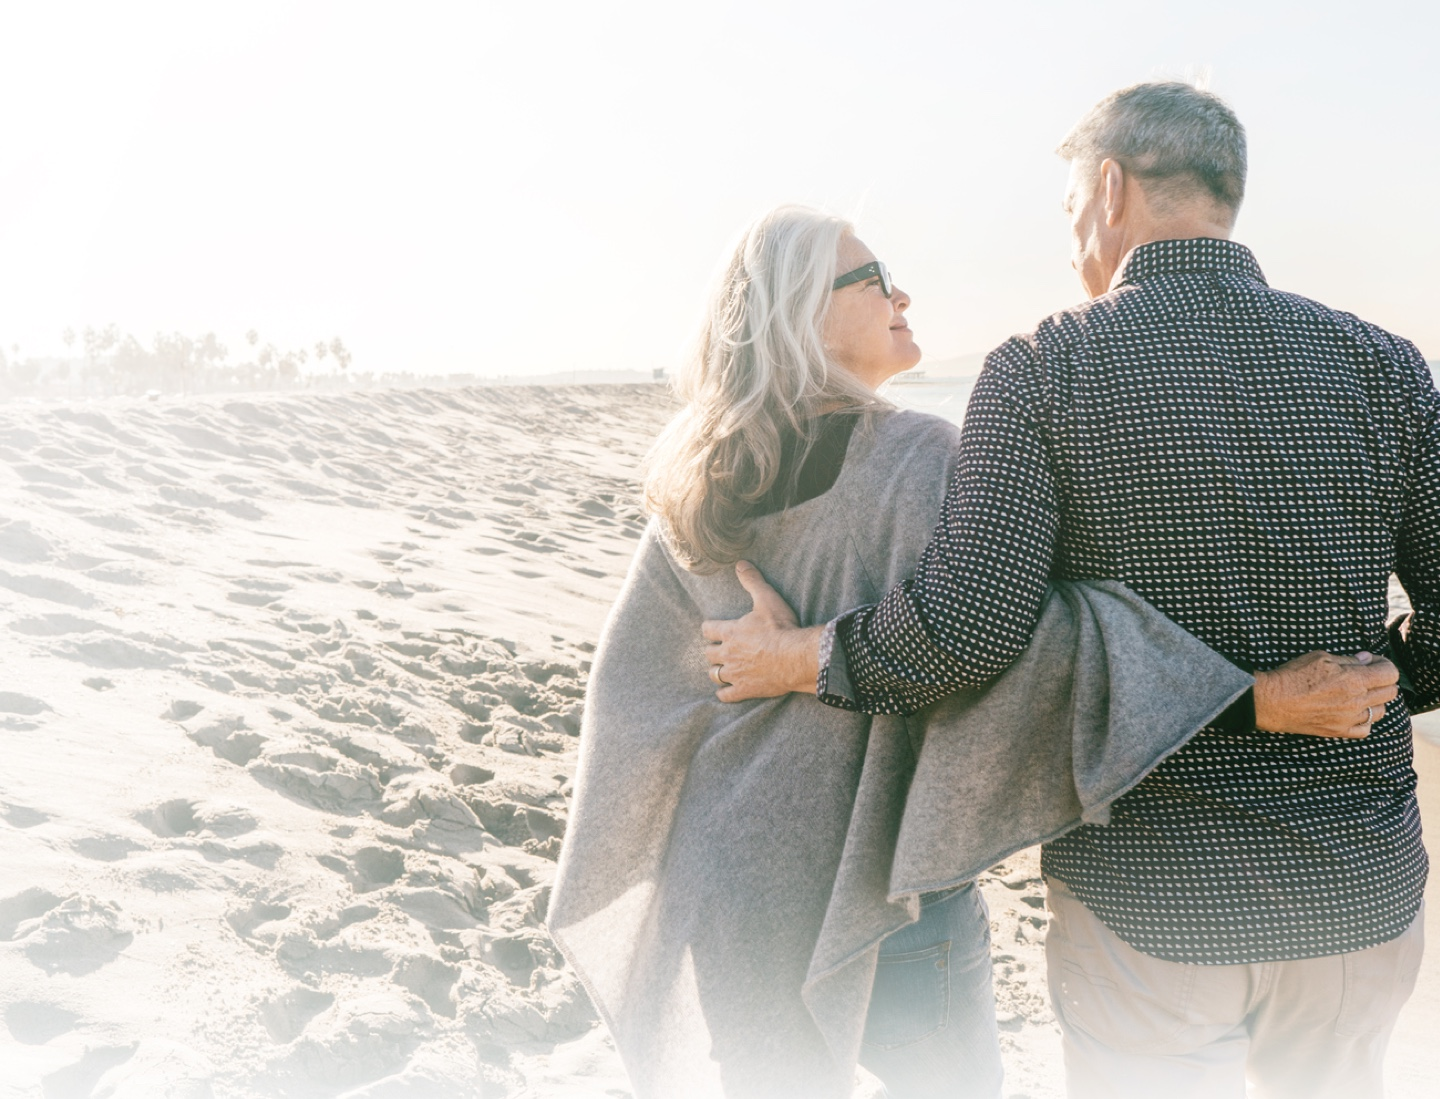 Older man and woman walking on beach